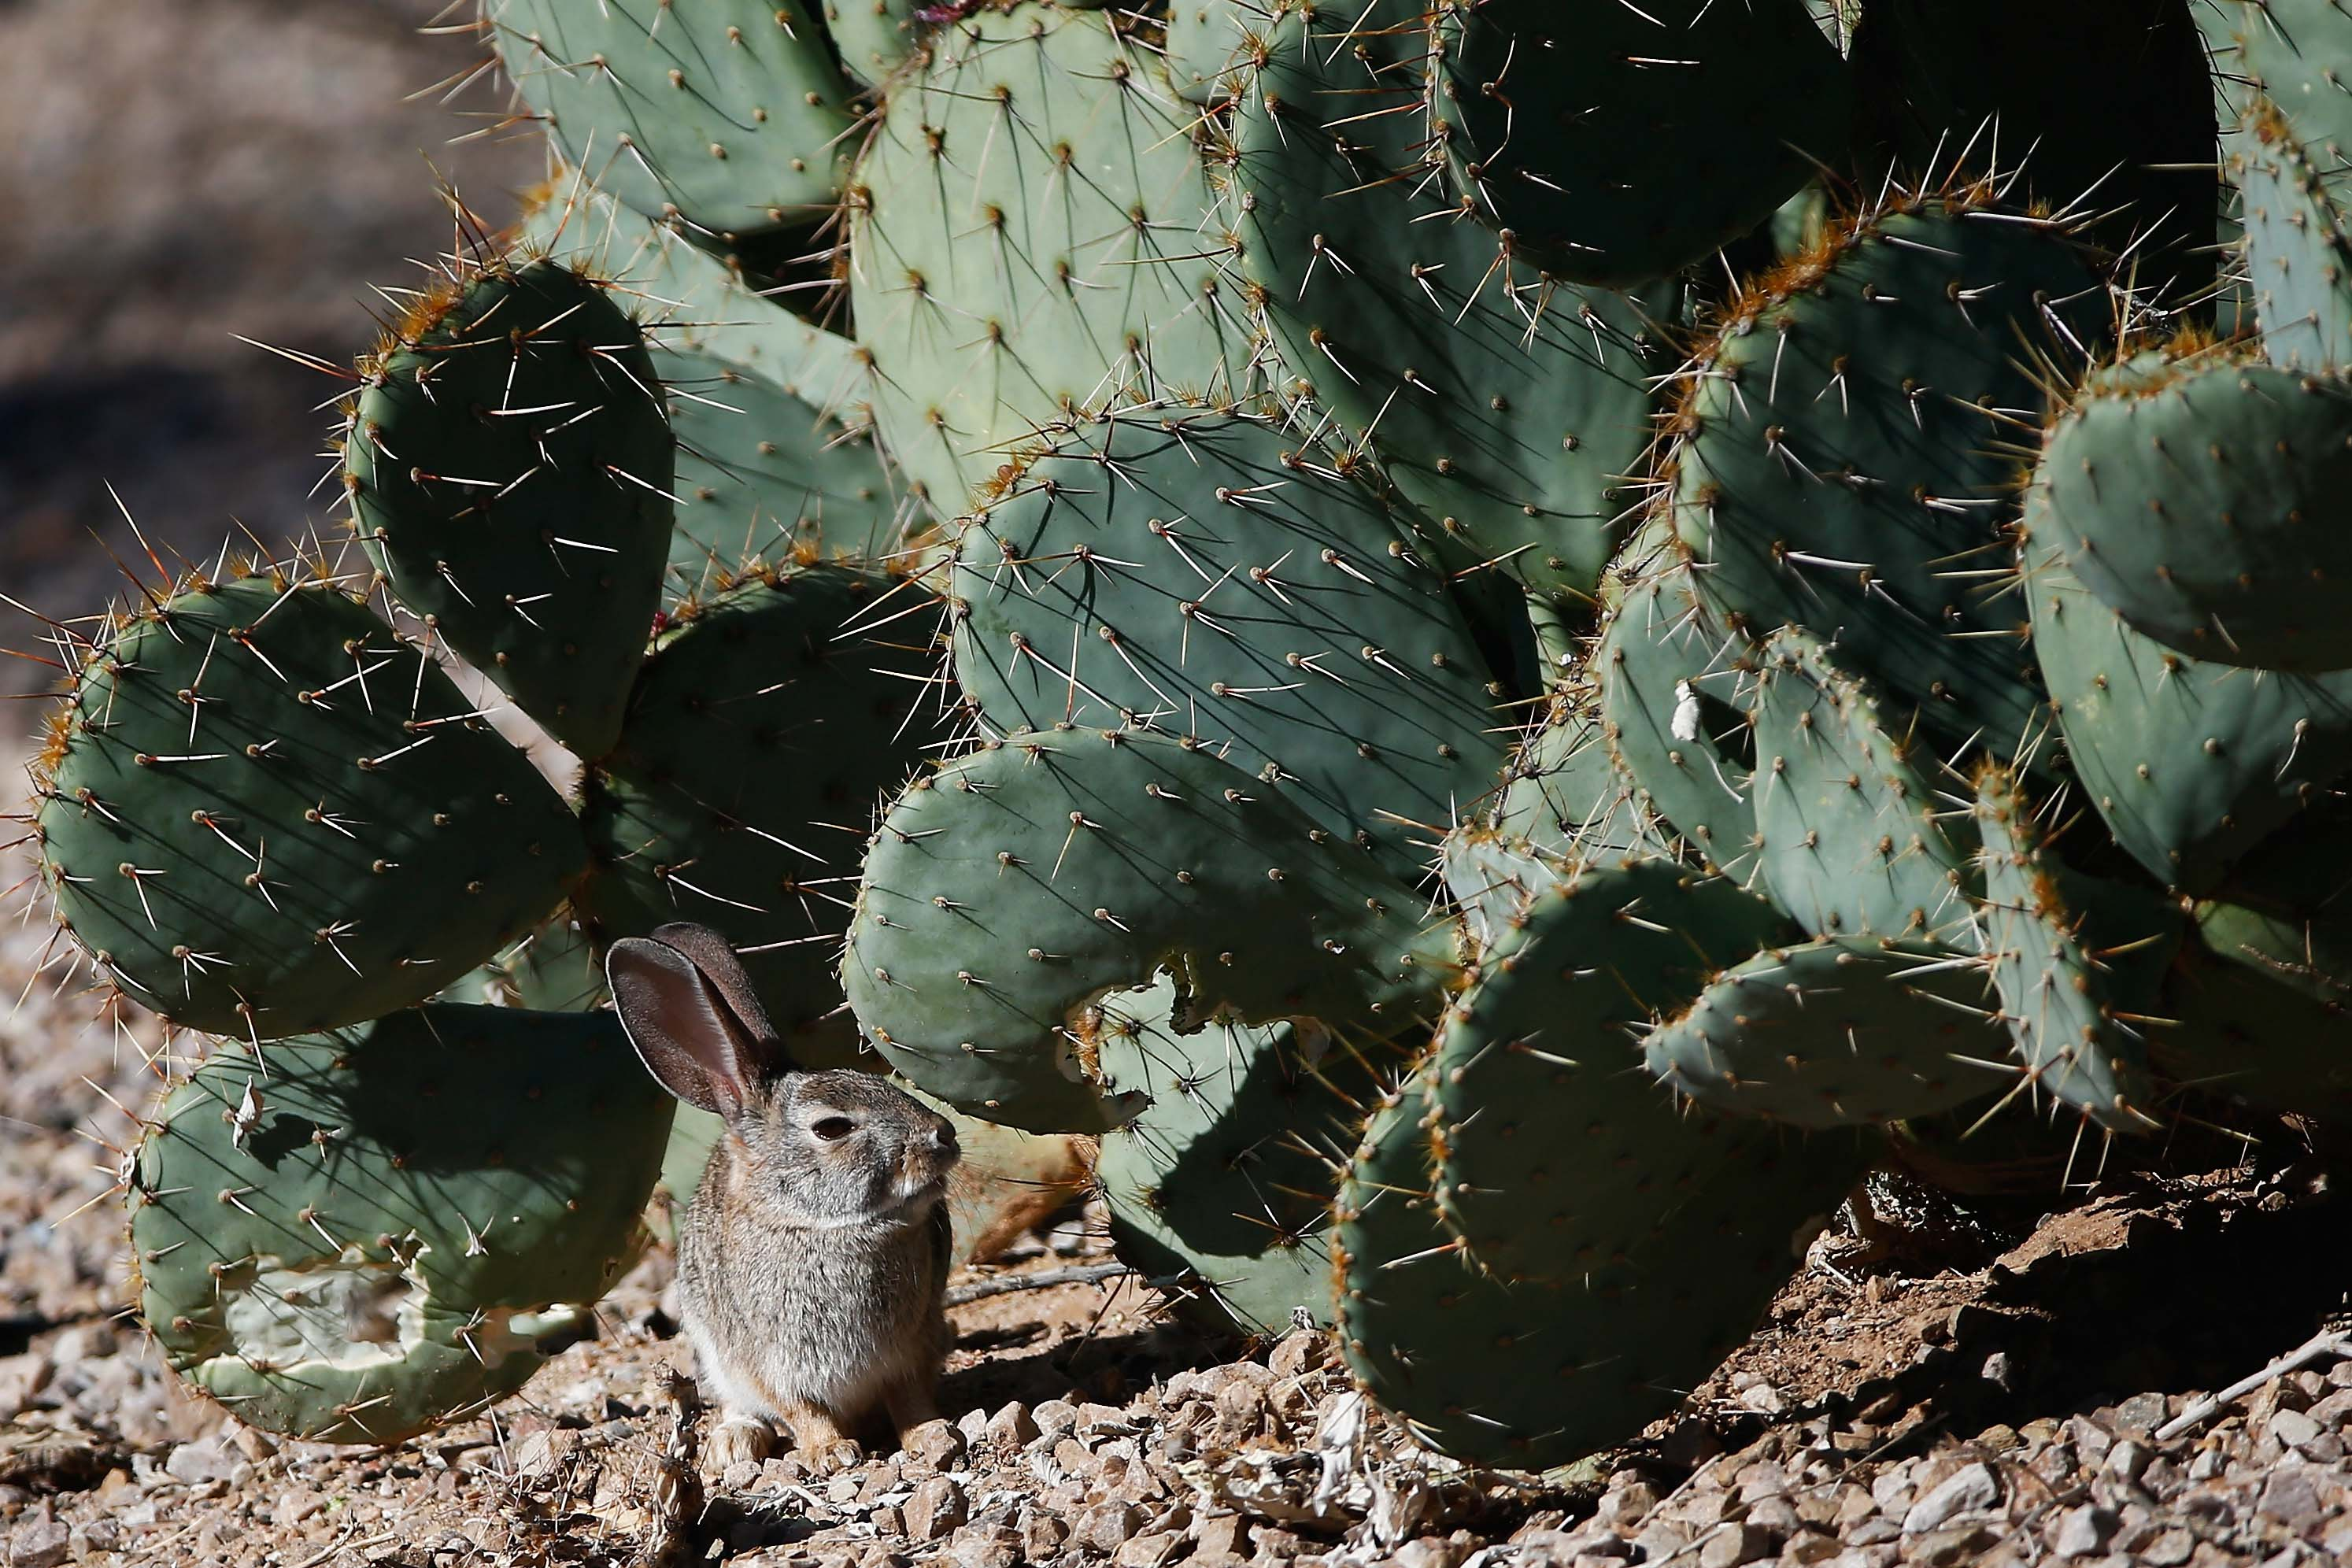 A prickly situation